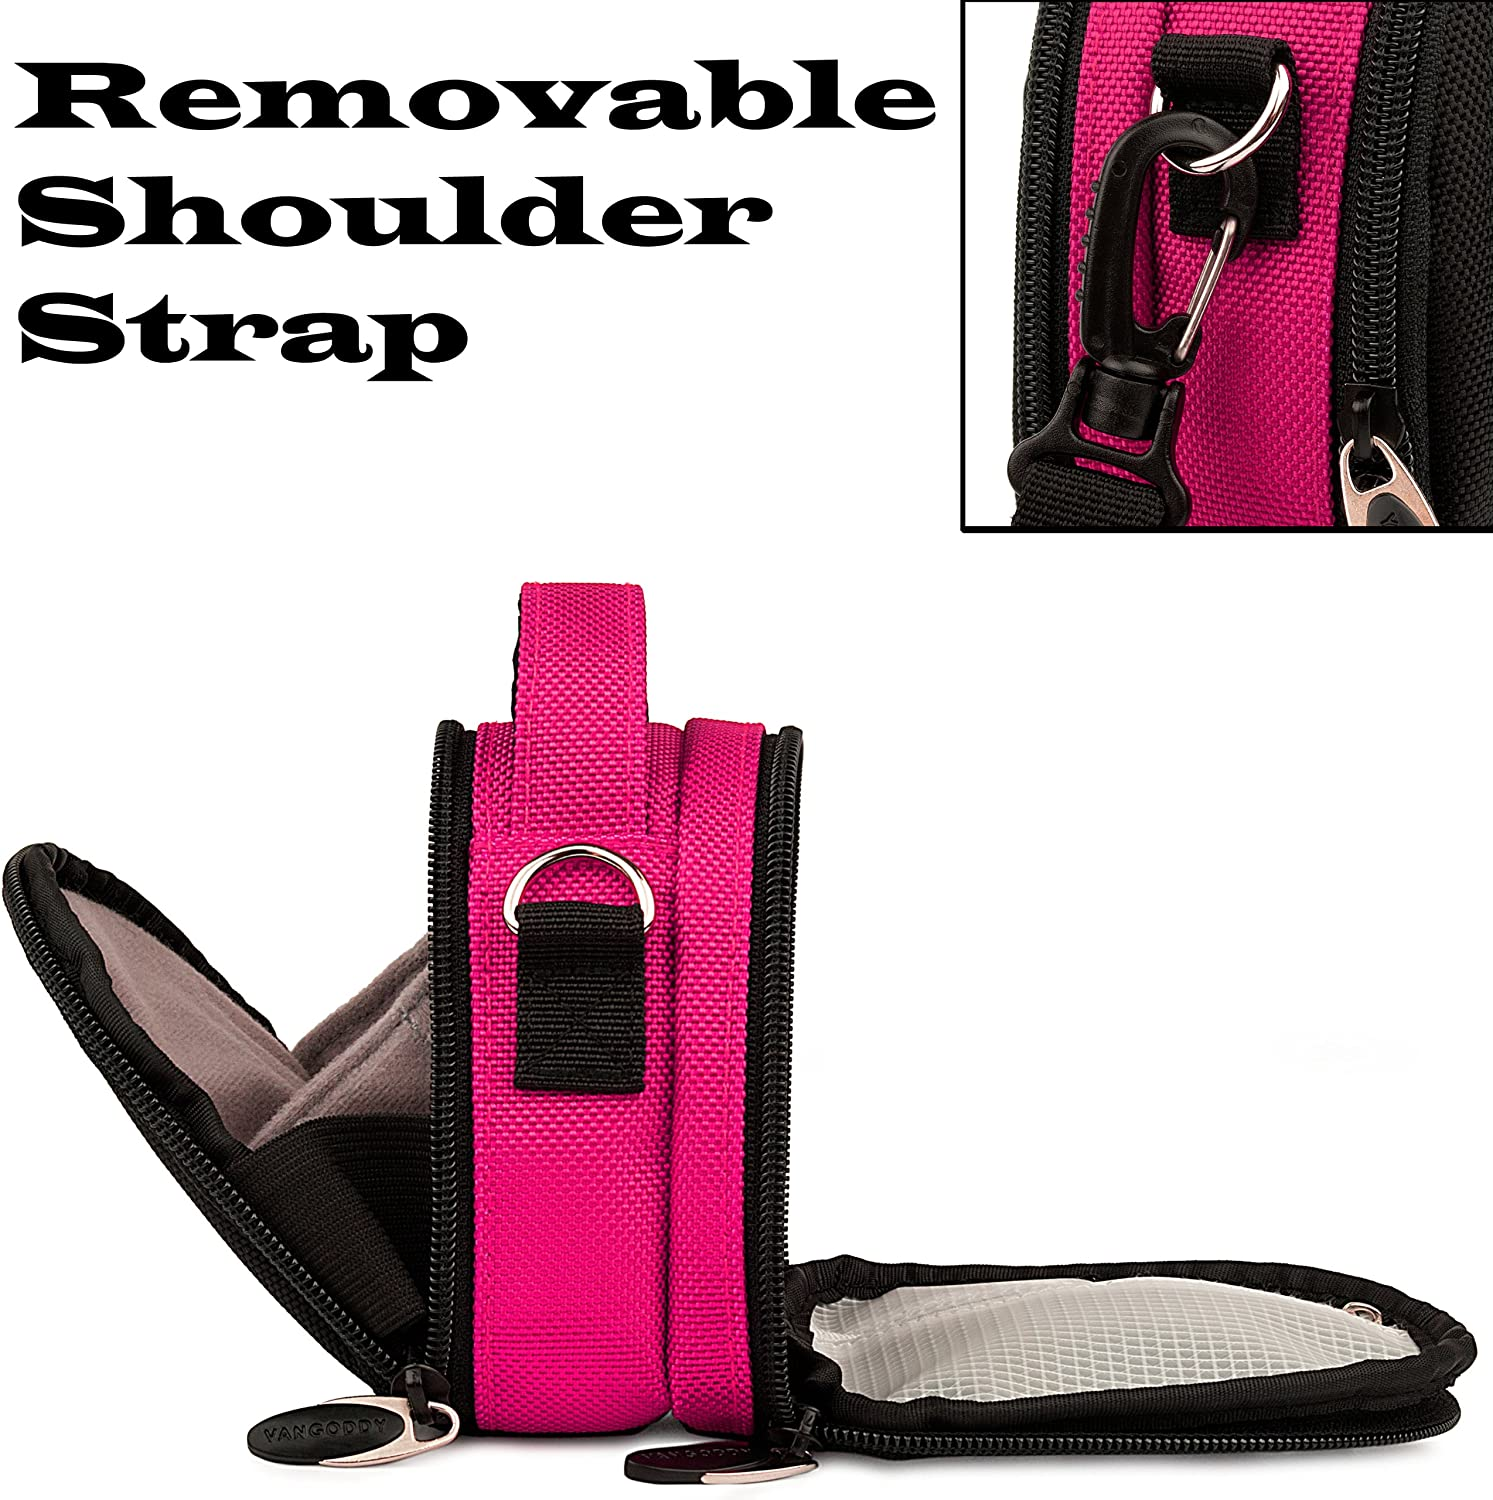 TS FH for Panasonic Lumix DMC ZS Point and Shoot Camera and Screen Protector and Mini Tripod Mini Travel Shoulder Bag Carrying Case SZ1 Pink